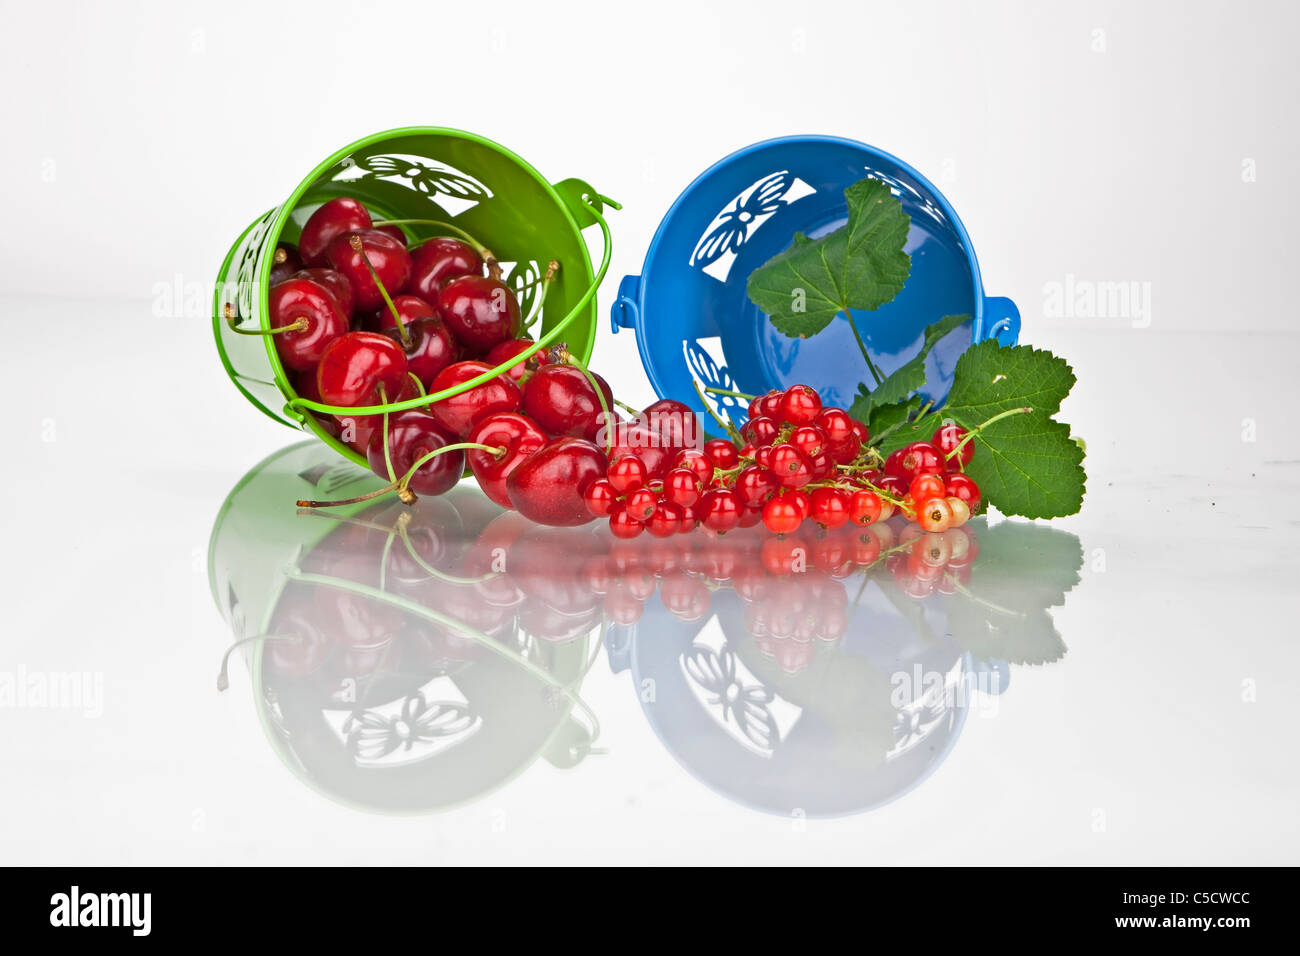 Cherries and currants in small buckets directly after harvest - Stock Image